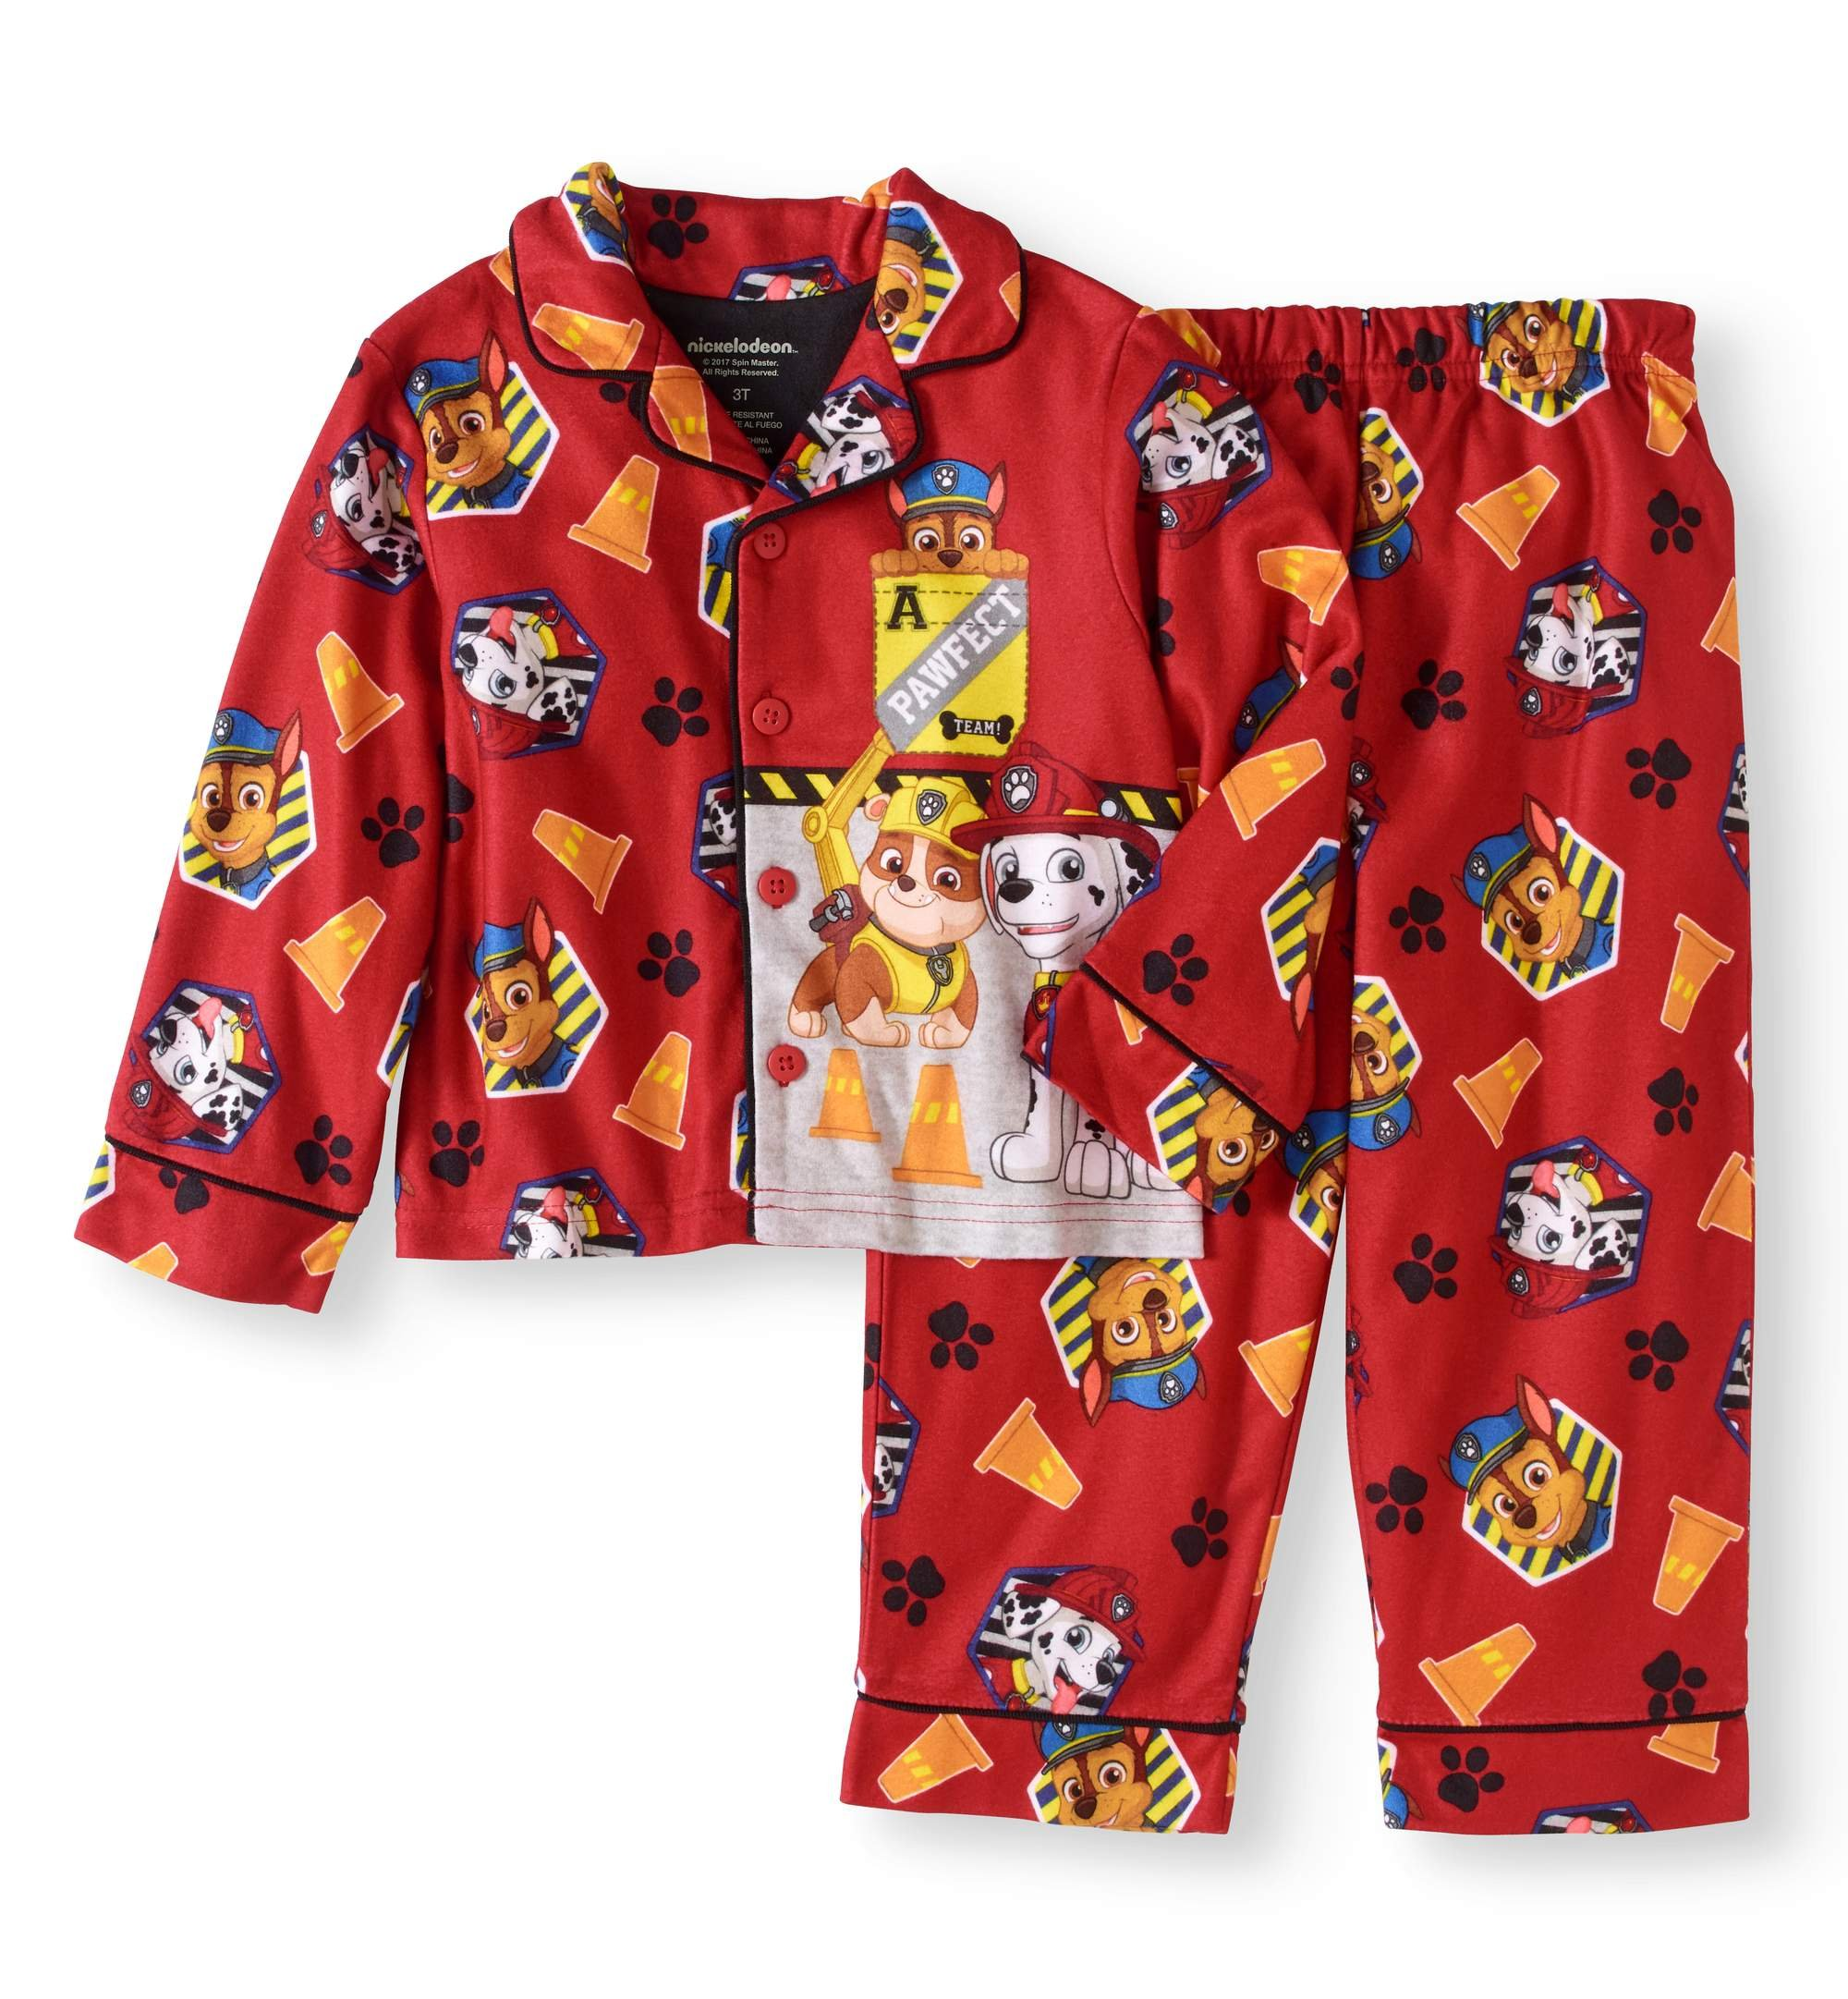 Paw Patrol 2 Piece Pajama Set for Toddlers (2T) by AME (Image #1)